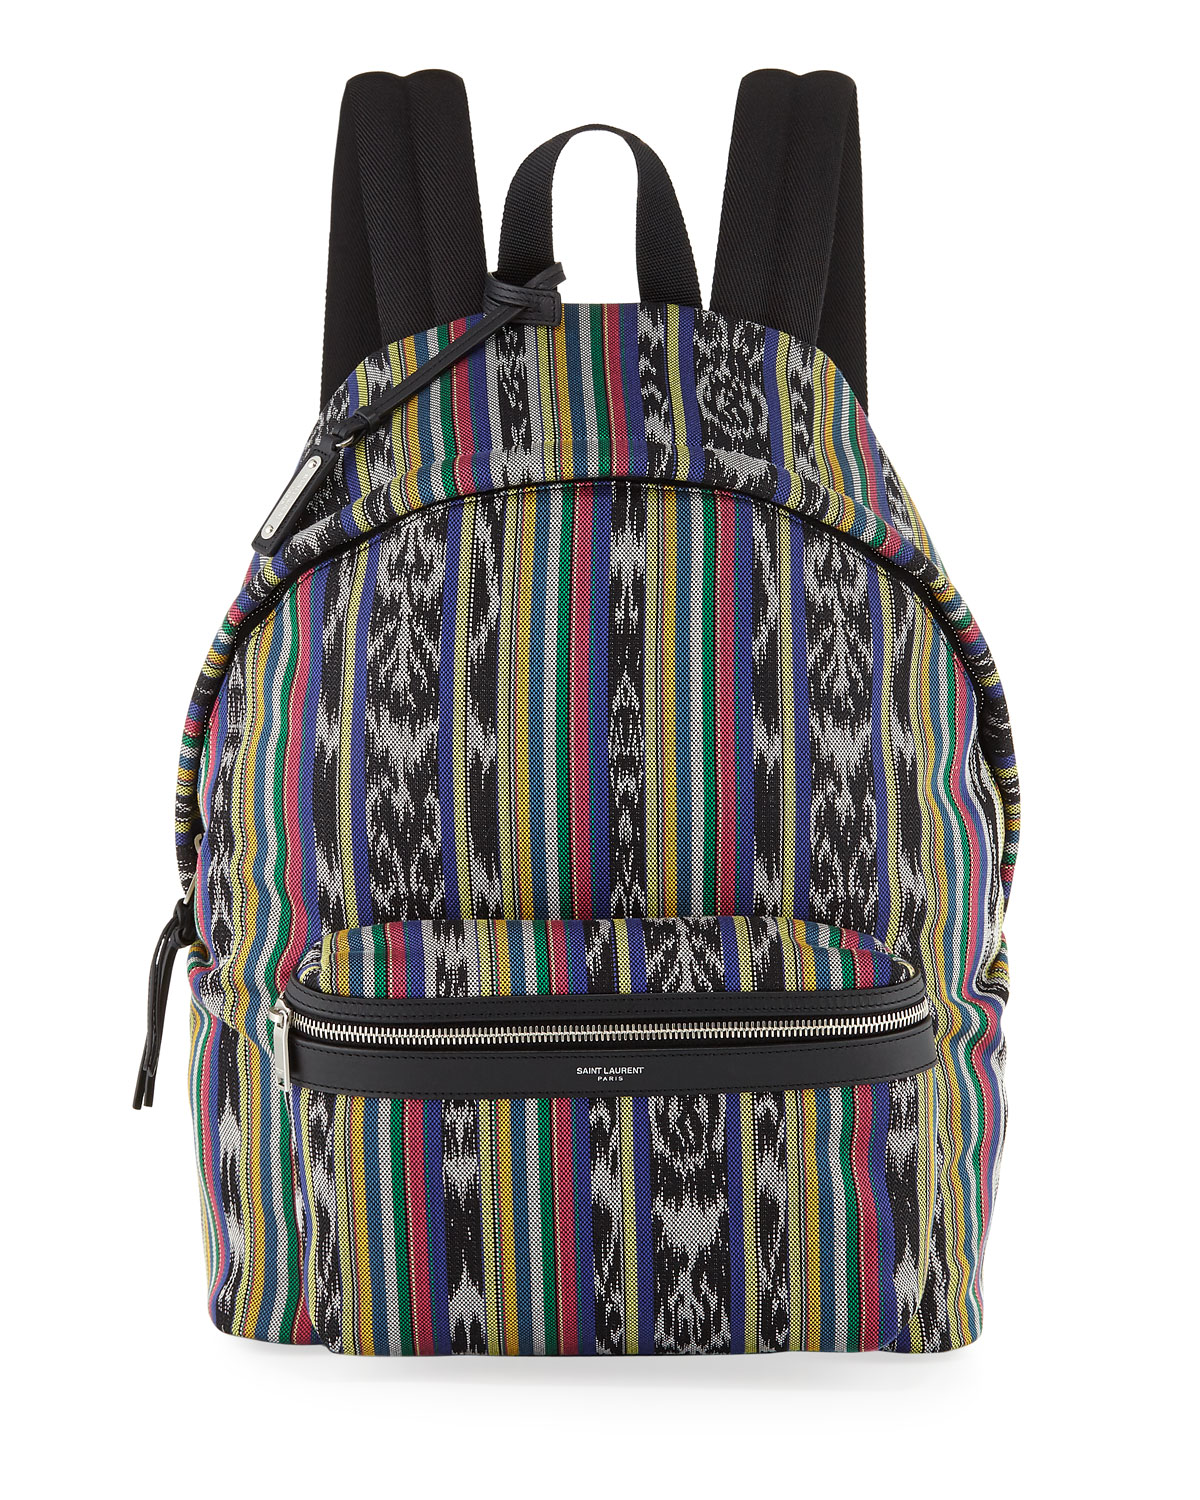 Men's Ikat-Print Leather-Trim Backpack